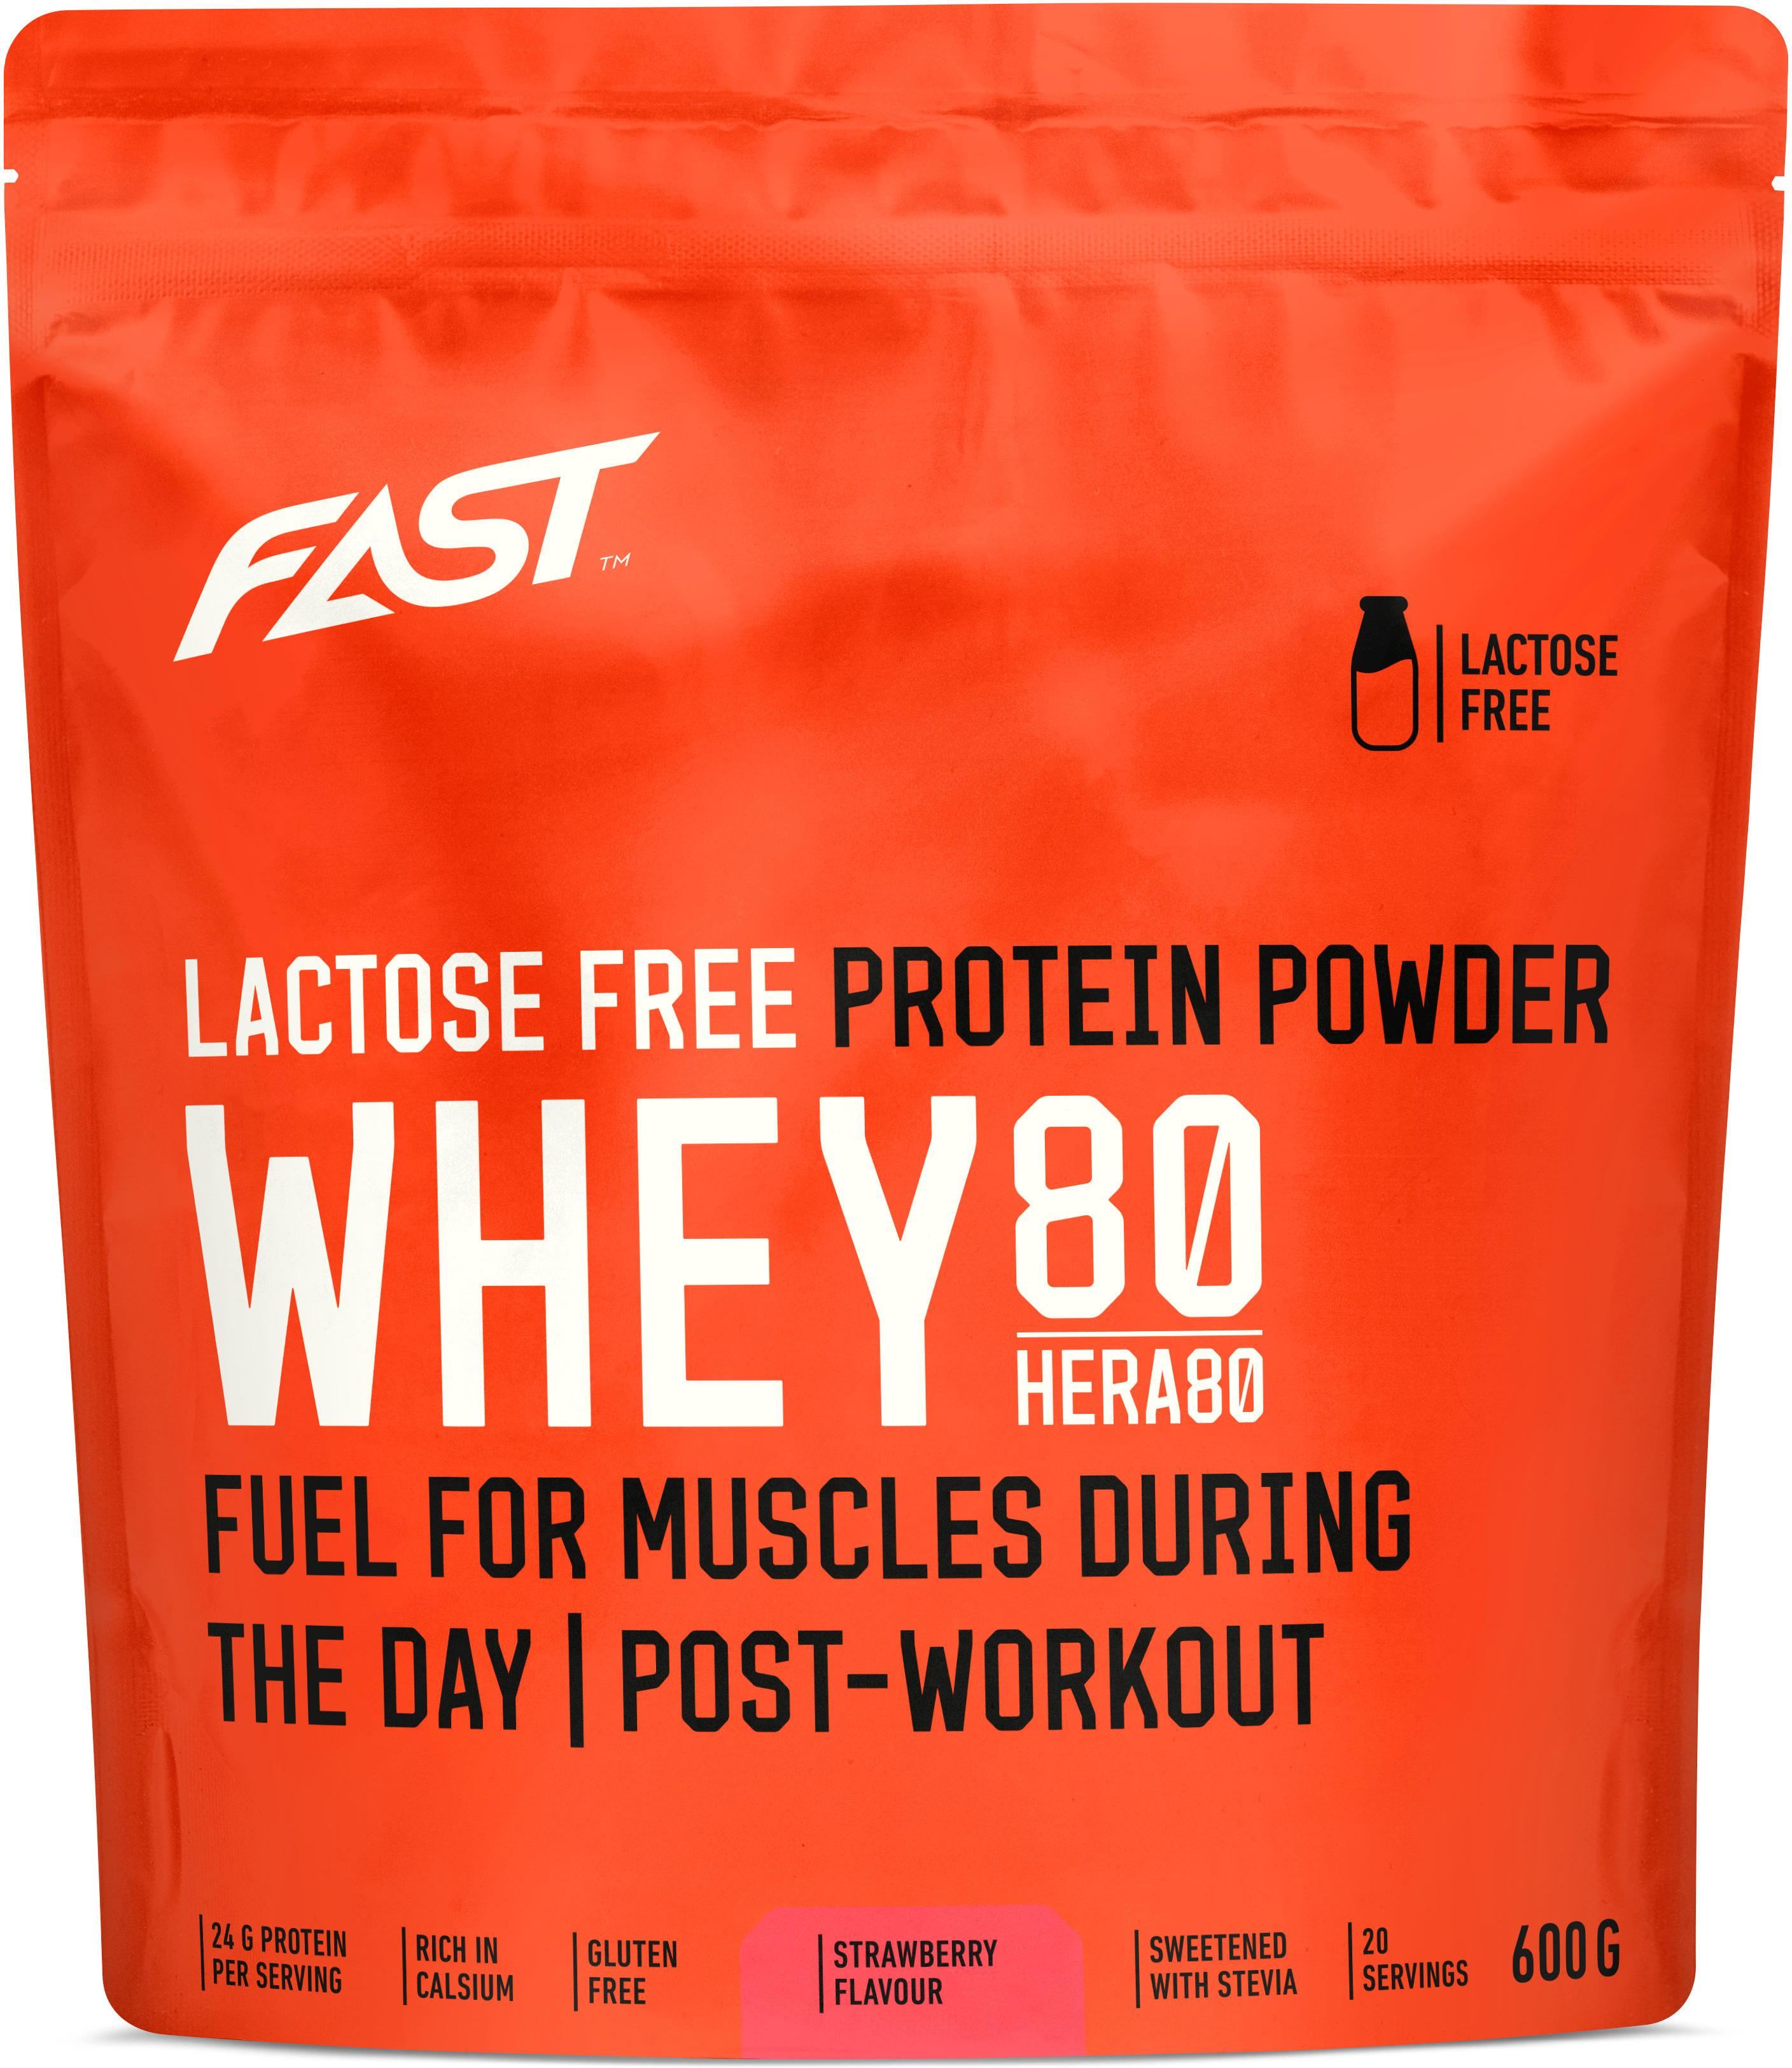 Prašak FAST Whey80 600 g strawberry lactose free